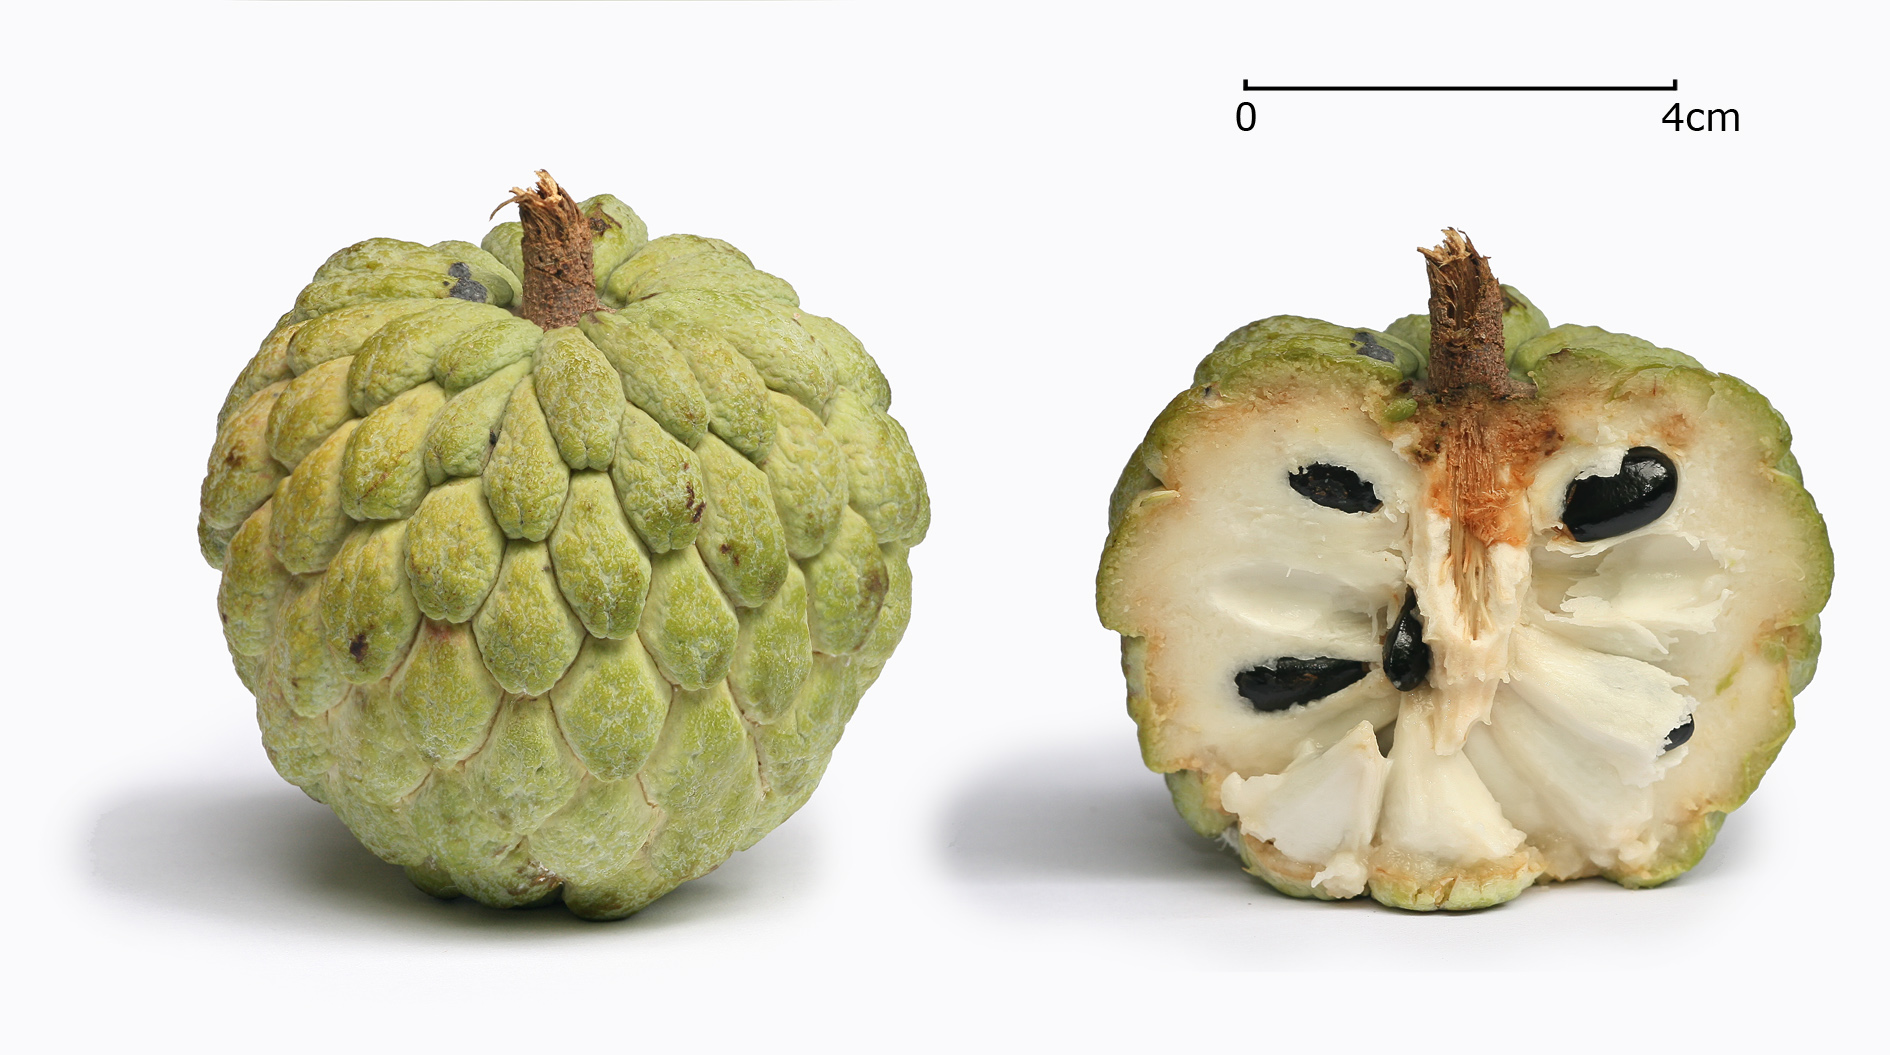 File:Sugar apple with cross section.jpg - Wikipedia